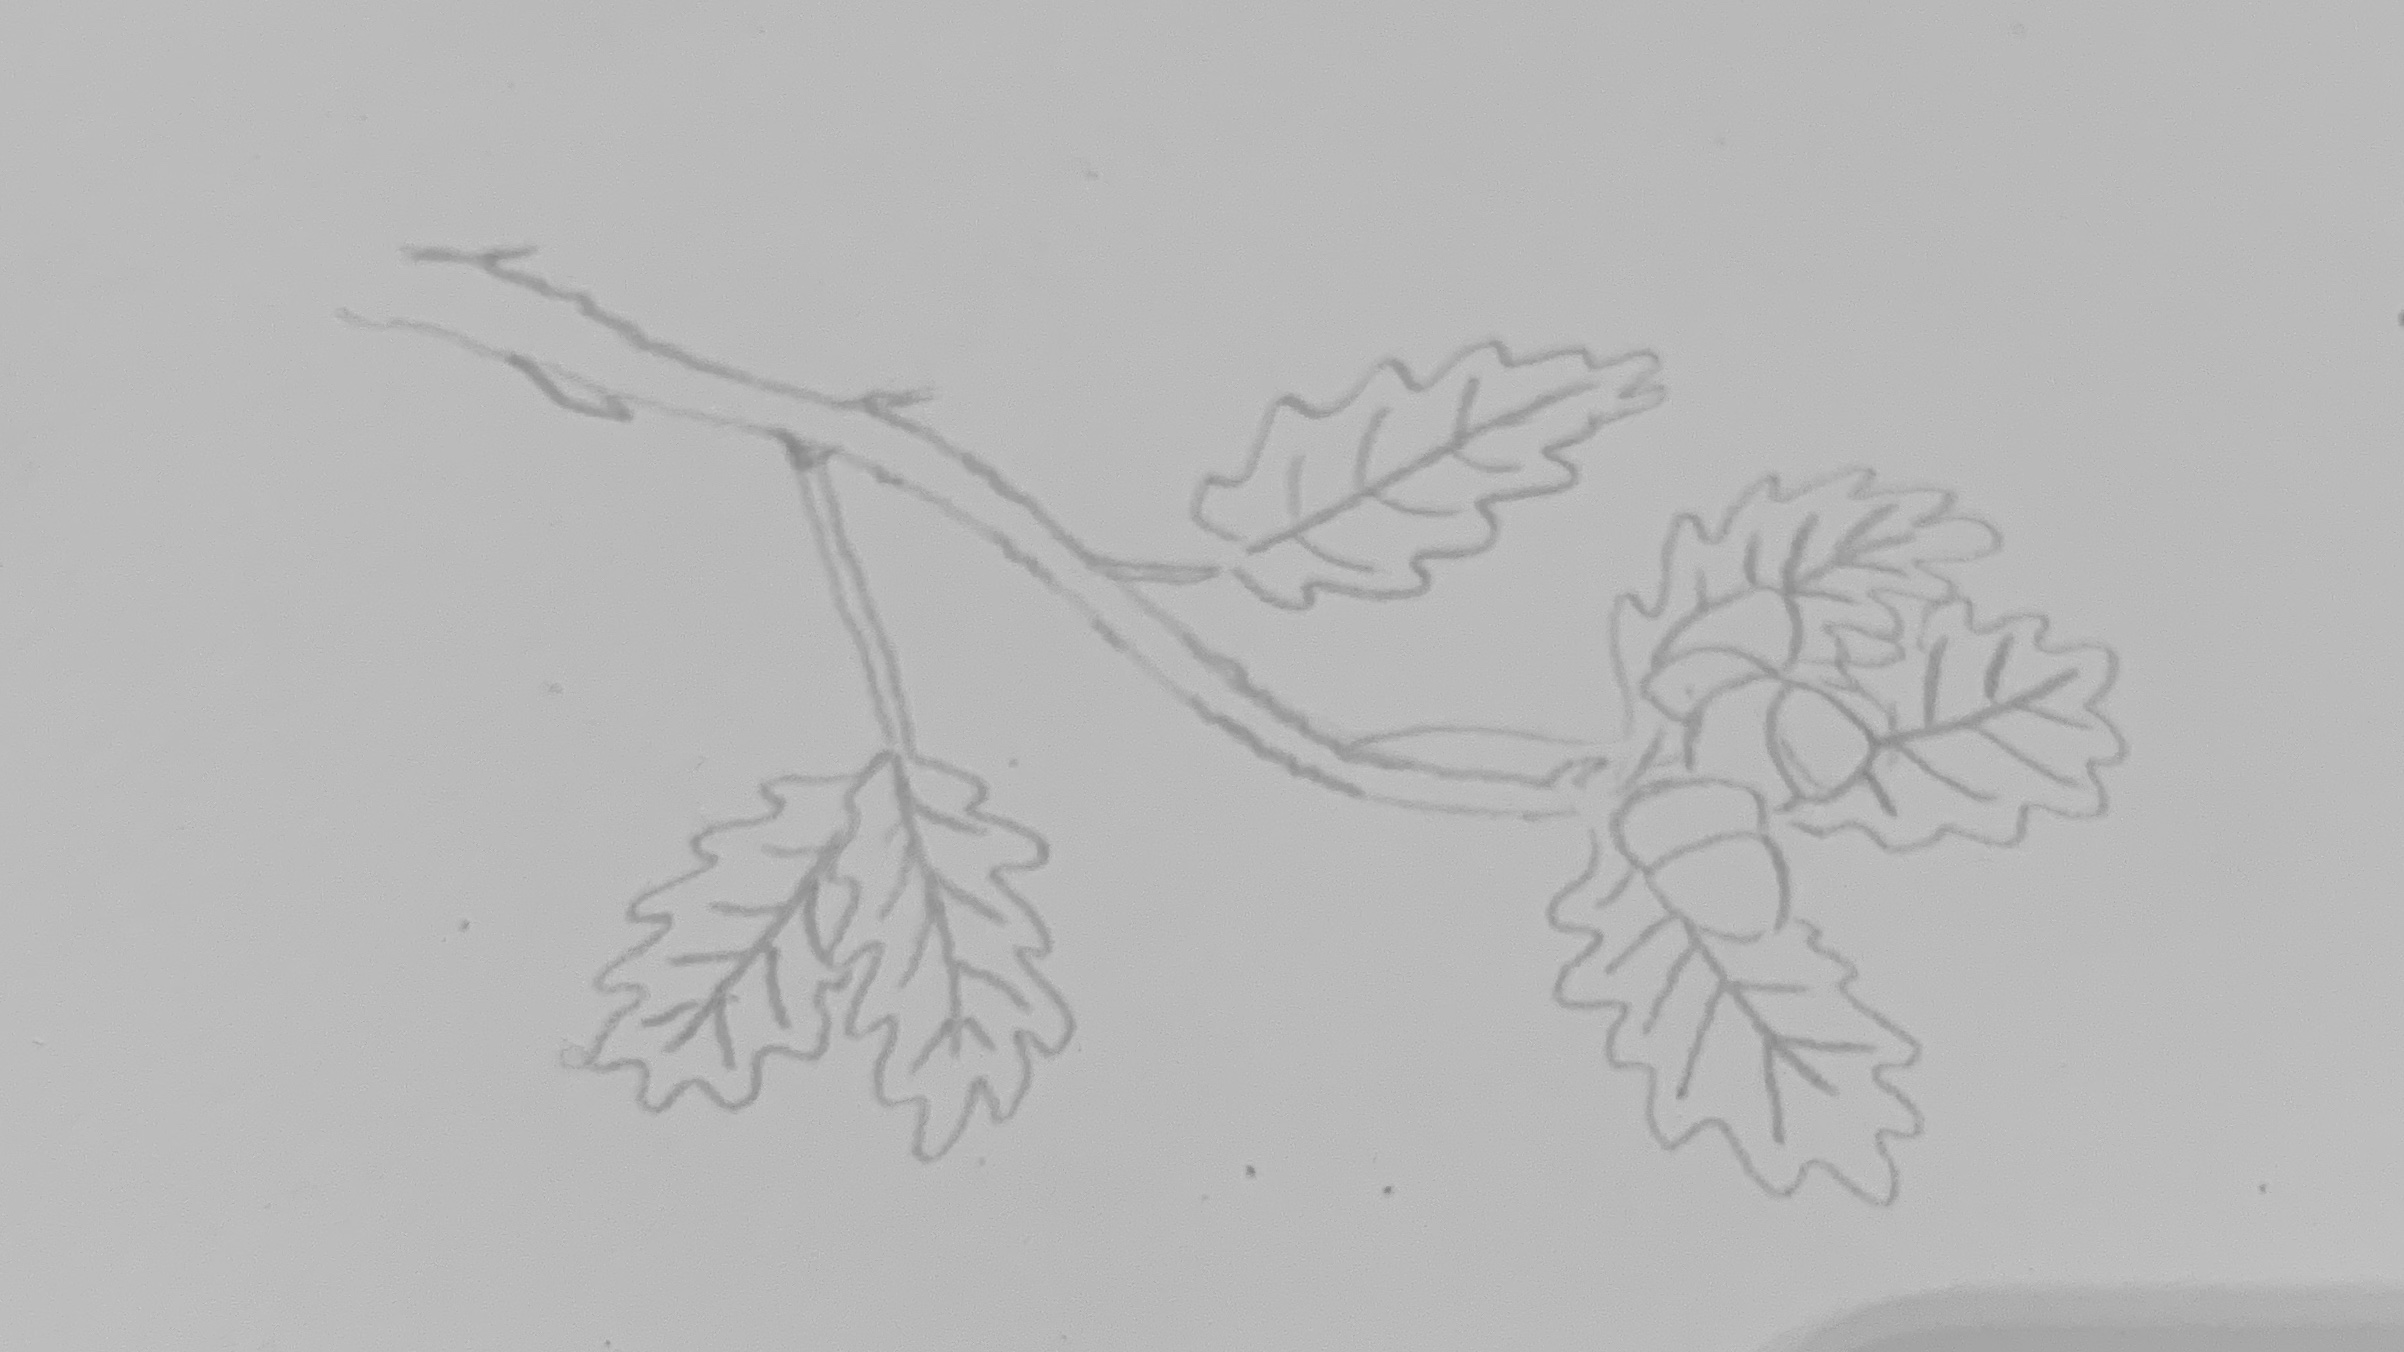 4. Draw acorns and then add leaves behind. Remember to include the veins of the leaves.